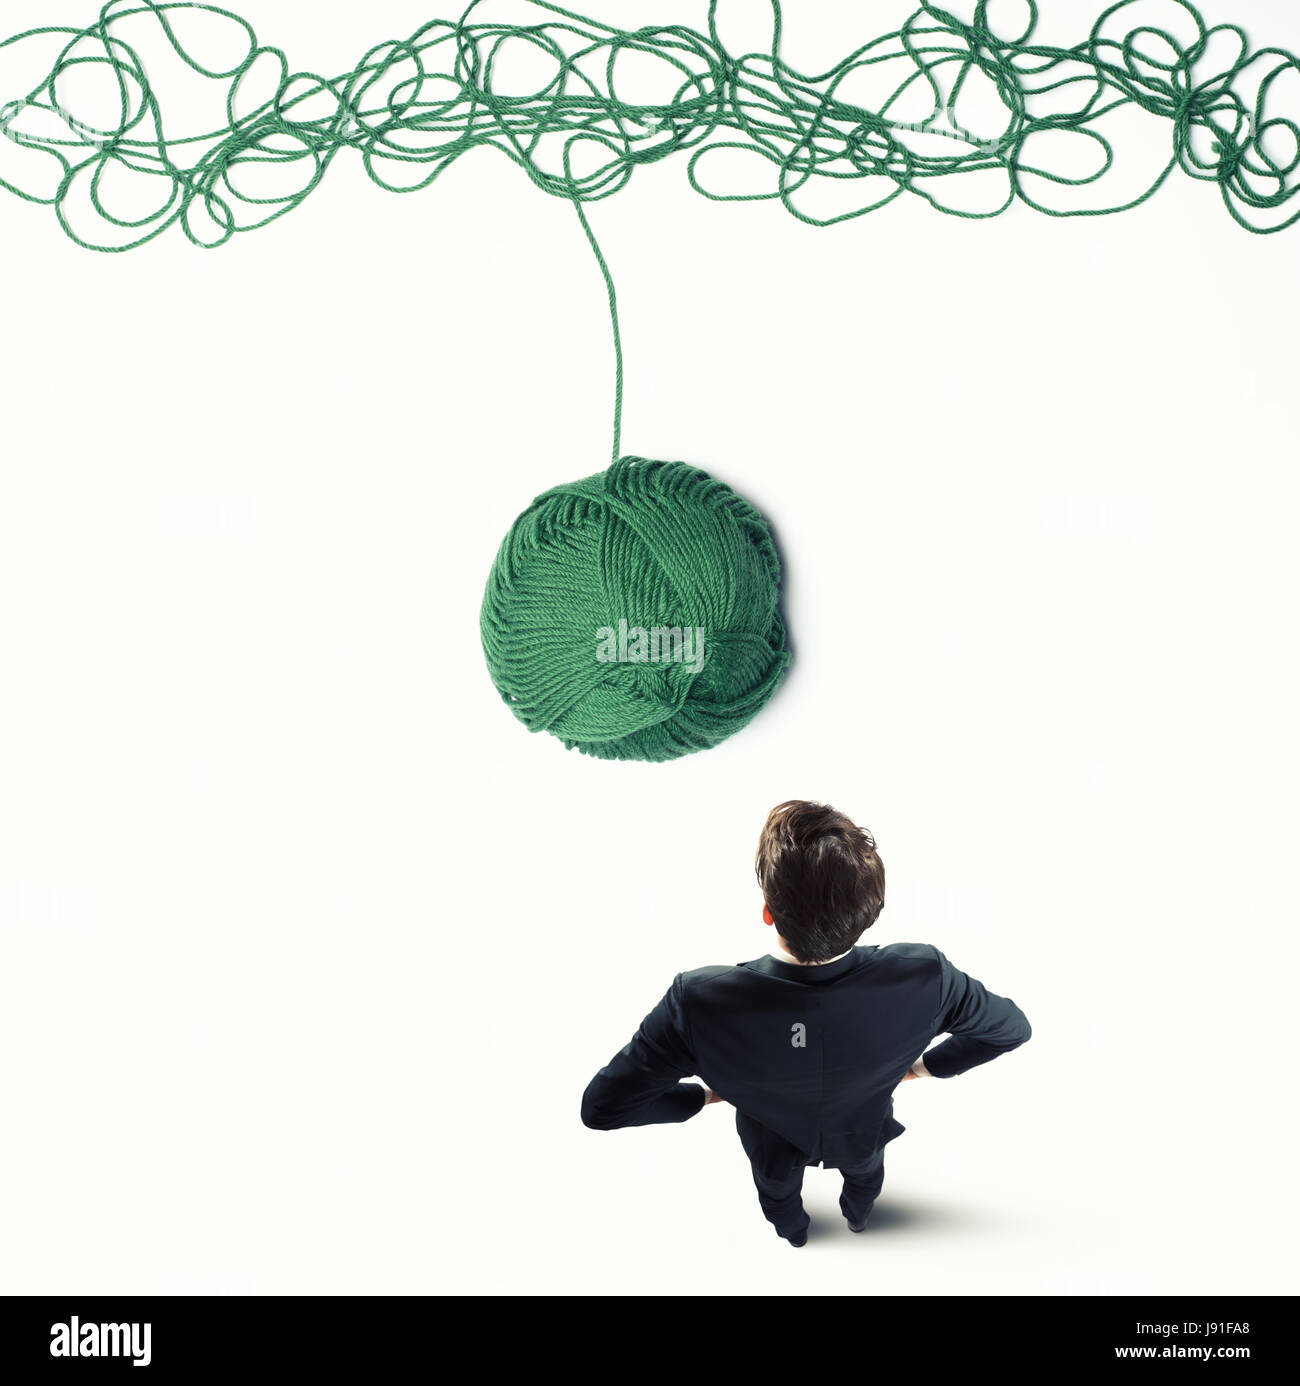 Concept de solution et de l'innovation avec la laine de ballons Photo Stock